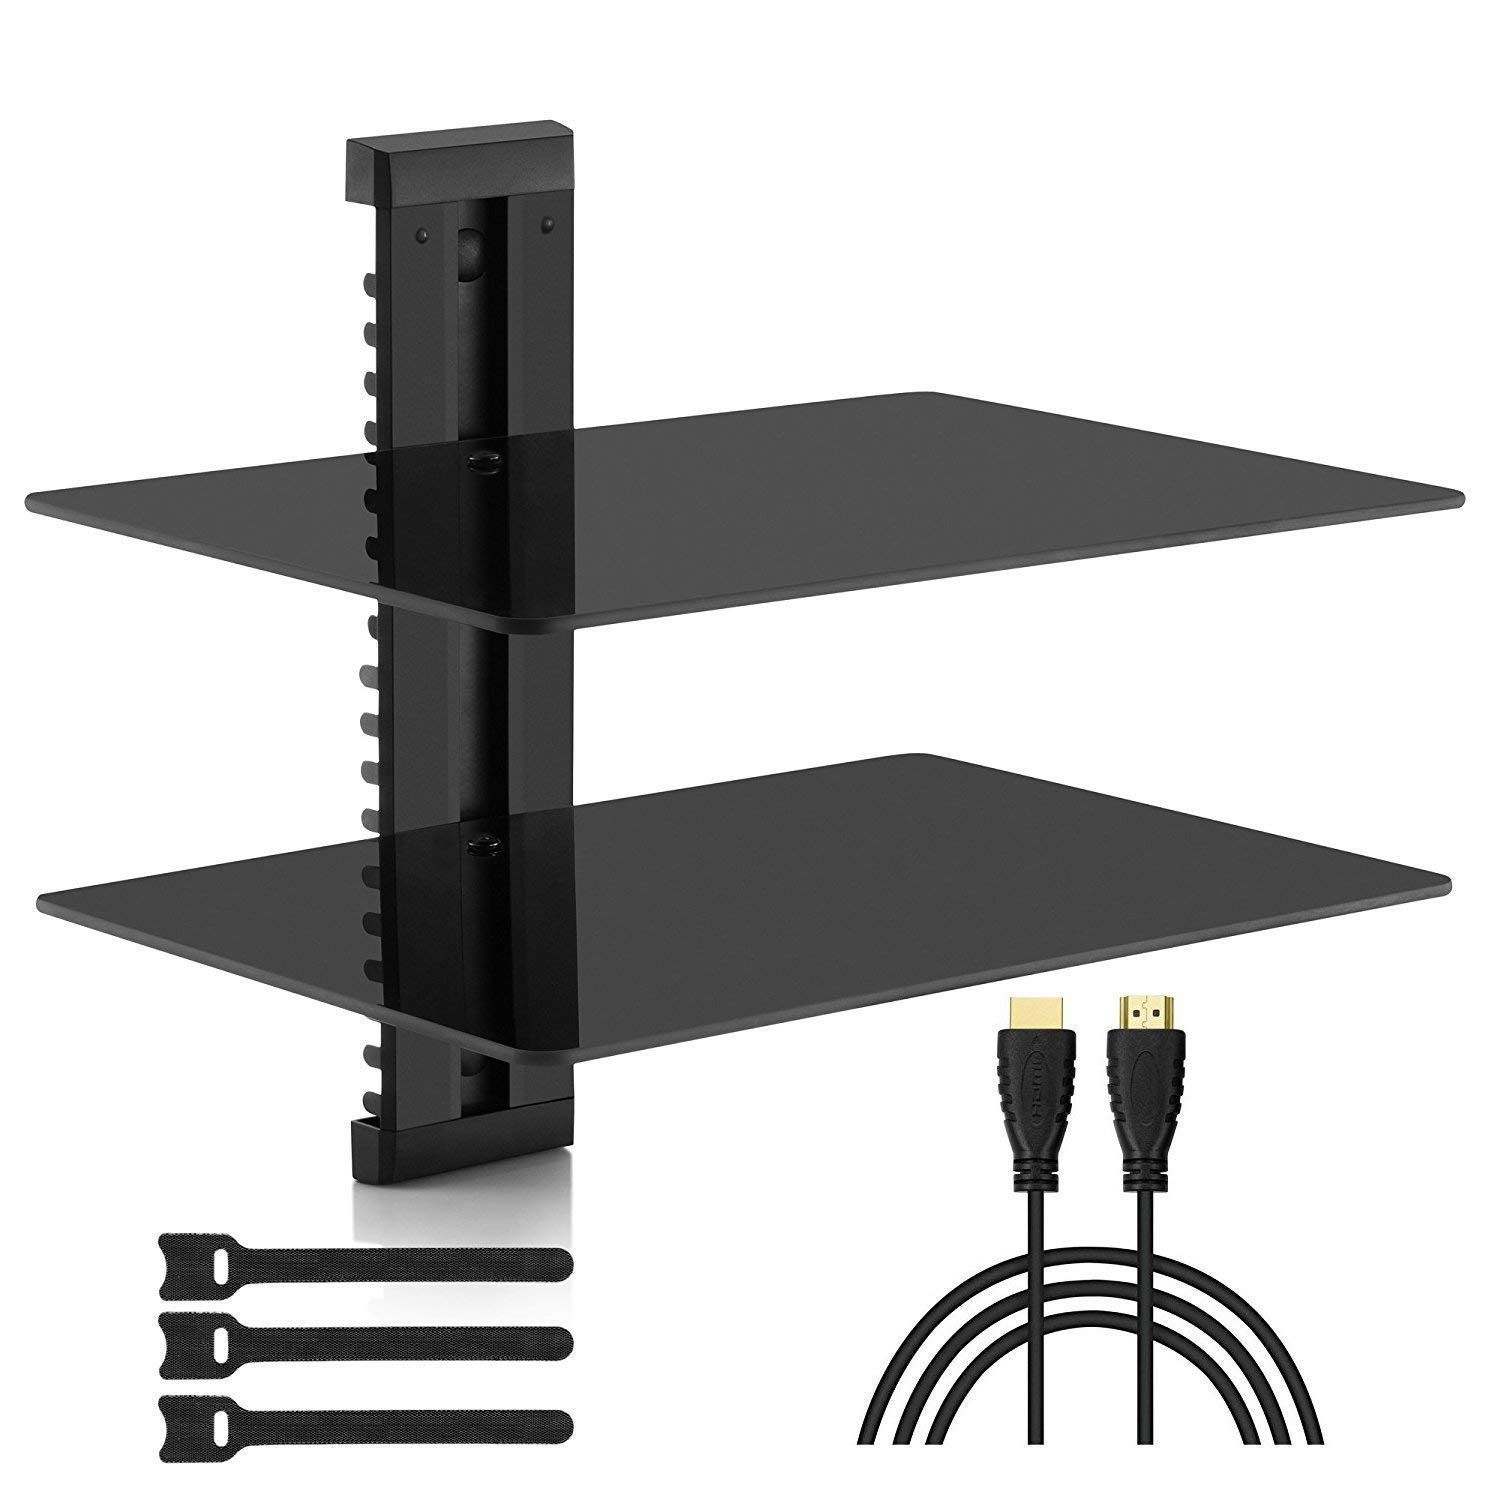 PERLESMITH Floating AV Shelf Double Wall Mount Shelf - Holds up to 16.5lbs - DVD DVR Component Shelf with Strengthened Tempered Glass - Perfect for PS4, Xbox, TV Box and Cable Box by PERLESMITH